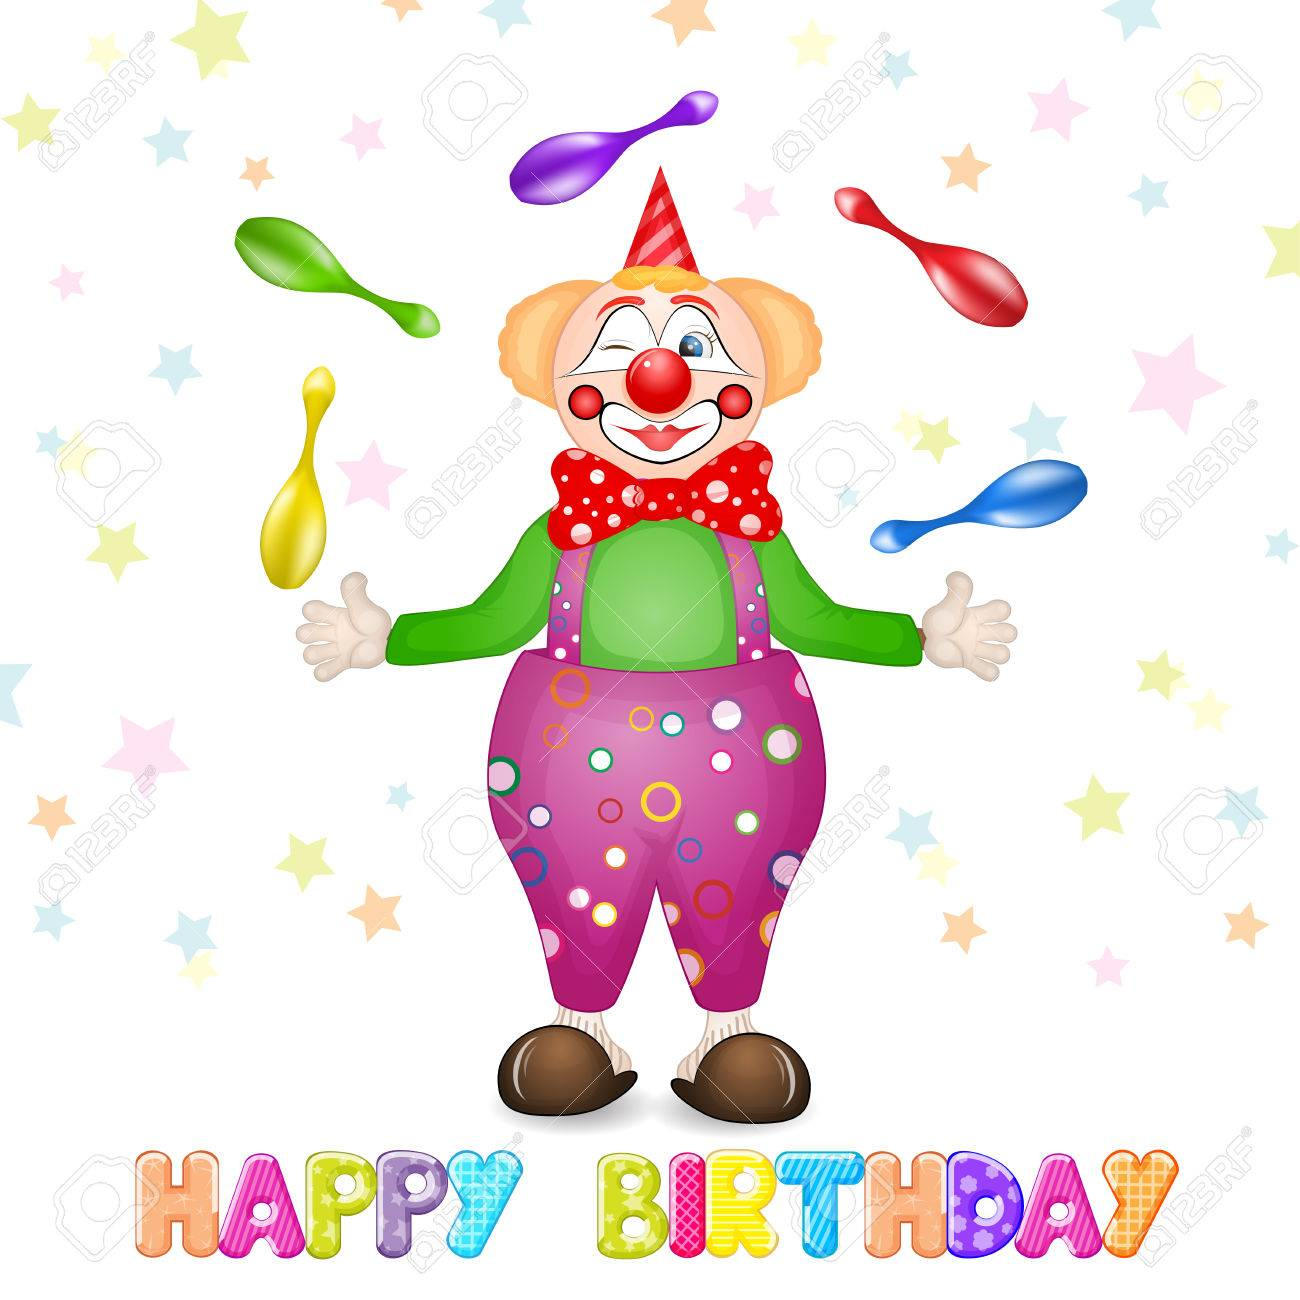 Happy Birthday Greetings Cute Happy Birthday Card With Fun Clowns Stock Photo Picture And Royalty Free Image Image 51656388